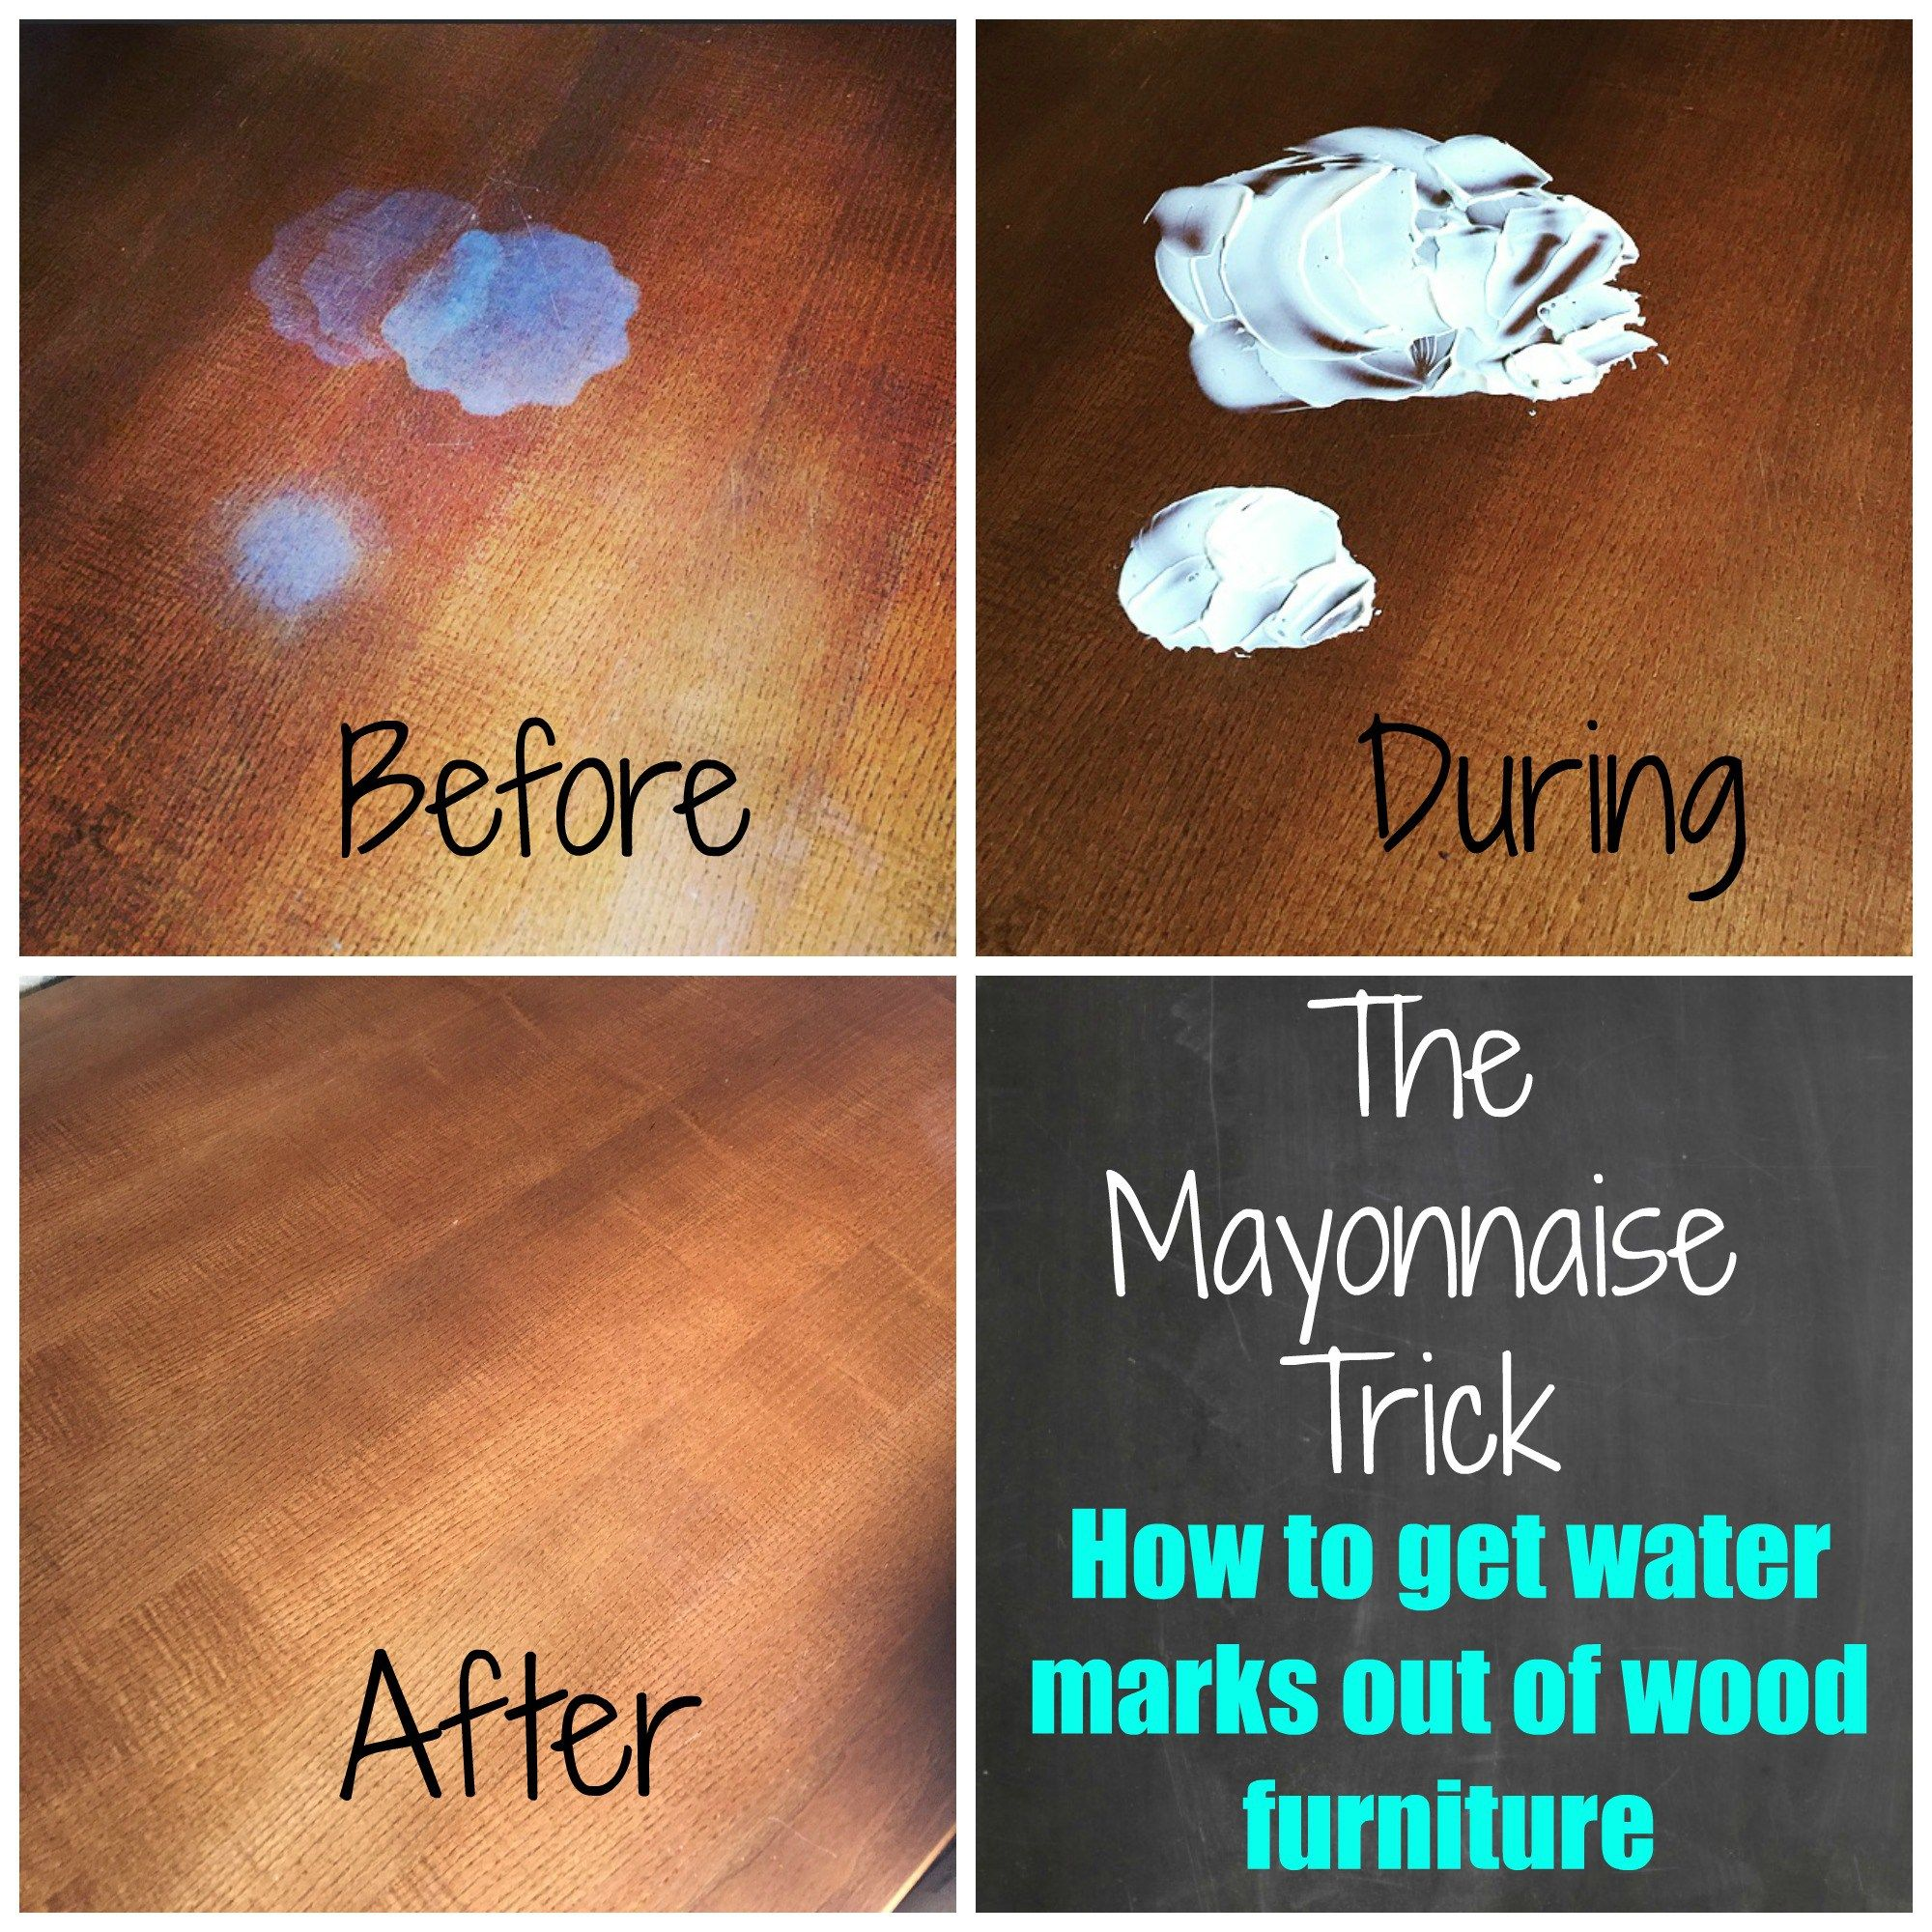 Tutorial How To Get Water Marks Out Of Wood Furniture Remove Water Stains Water Stain On Wood Wood Furniture